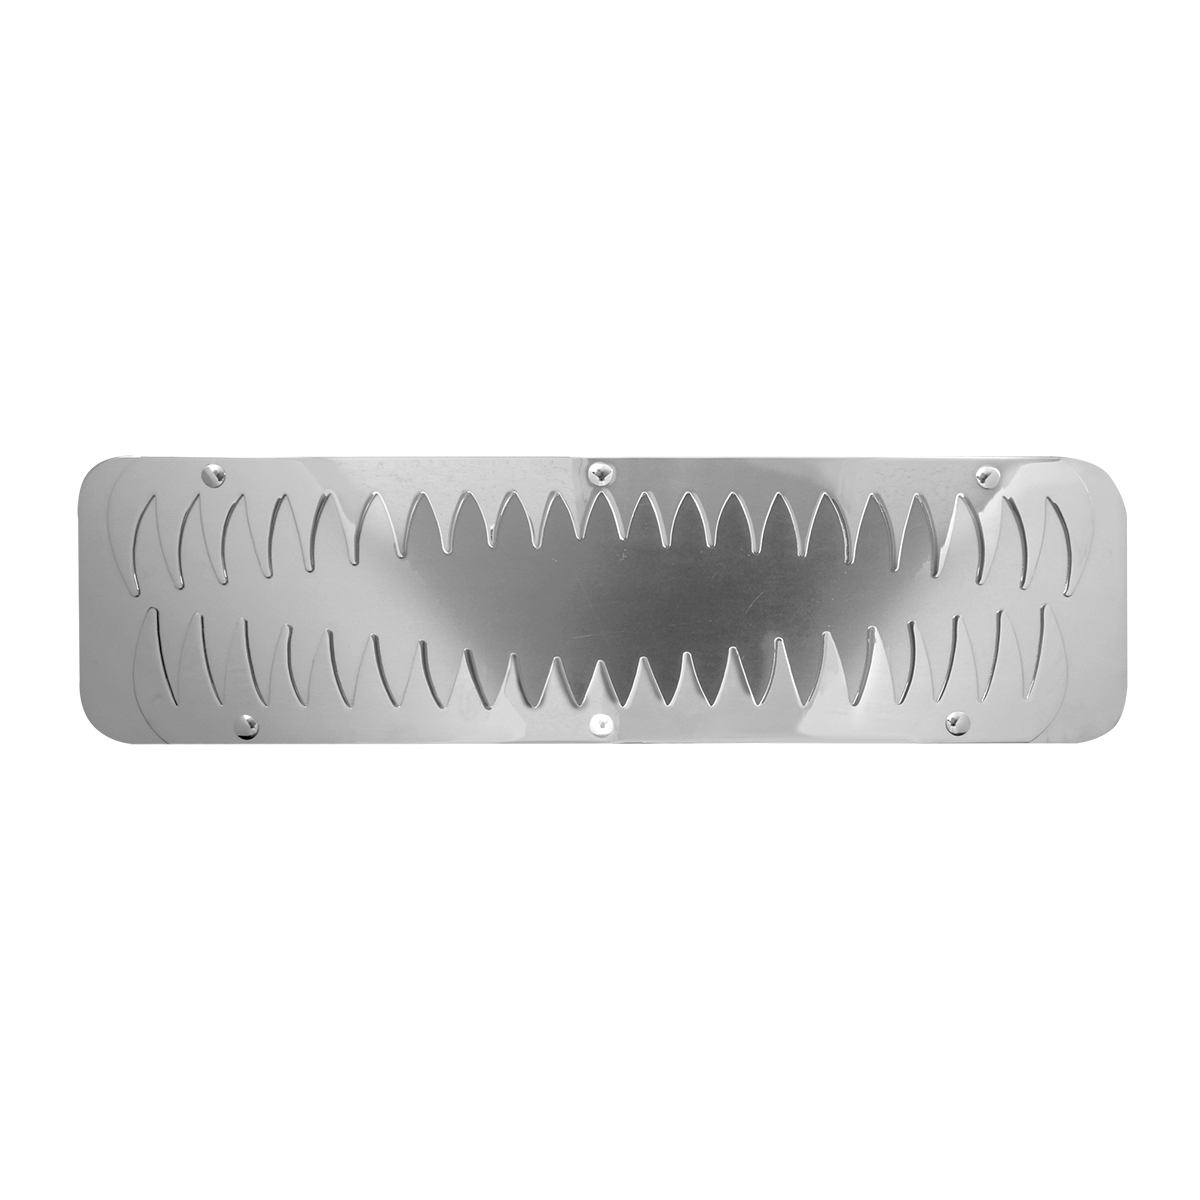 Stainless Steel Bottom Shark Teeth Style Mud Flap Plate w/o Backing Plate